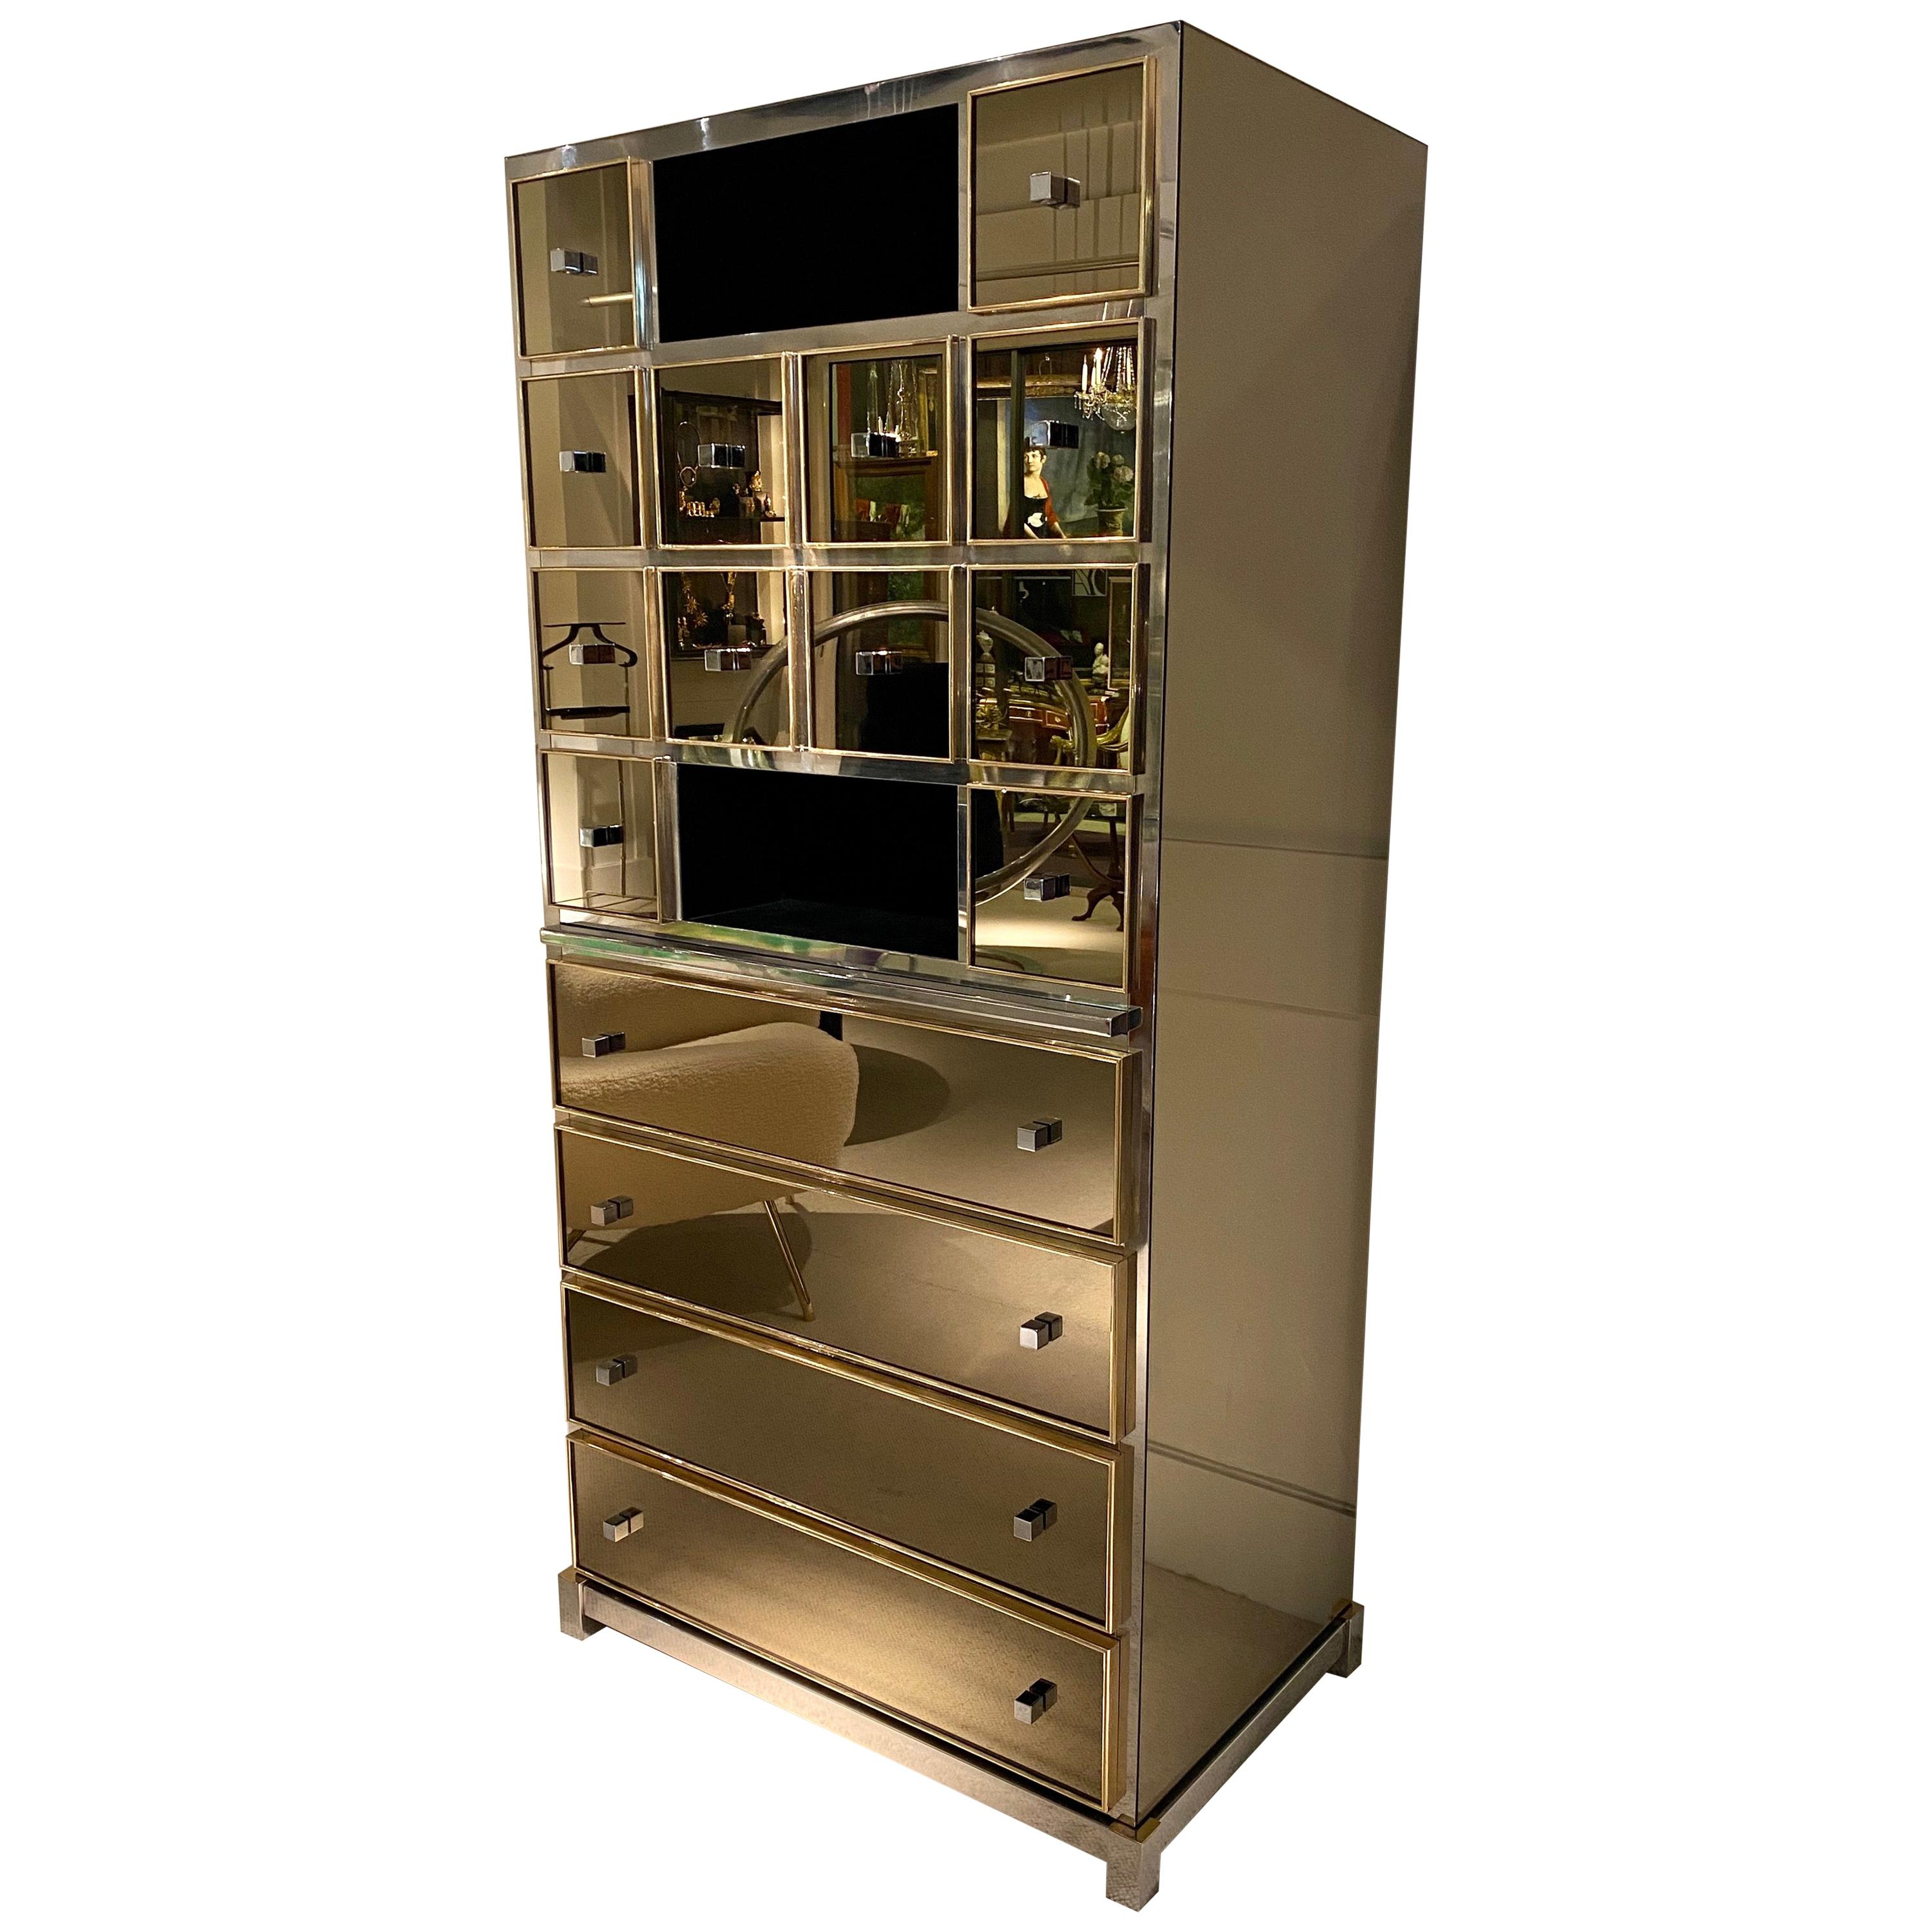 1970s Mirrored Cabinet by Michel Pigneres